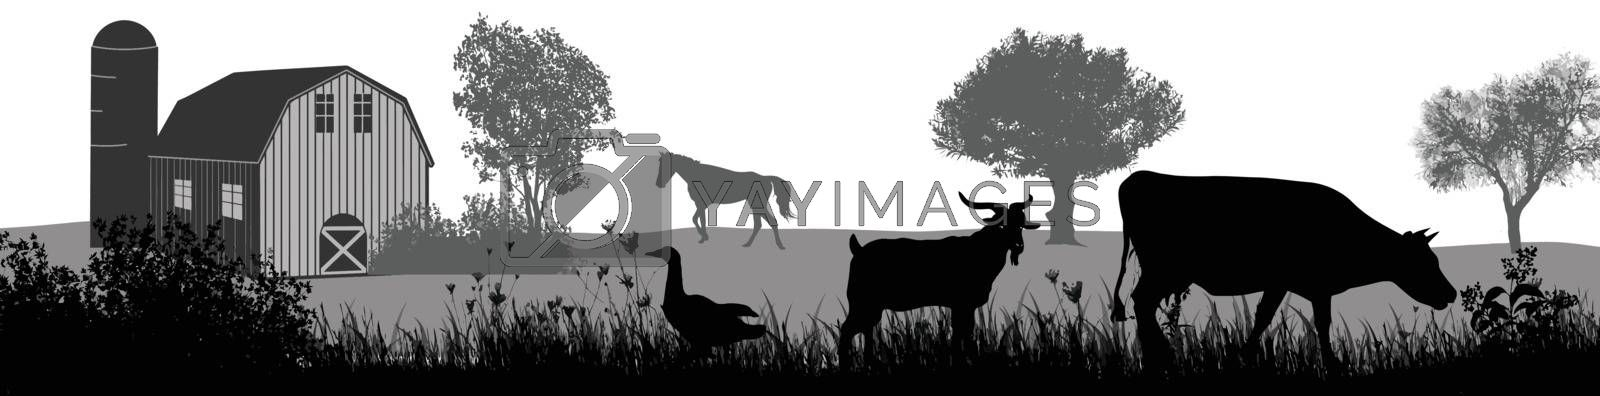 Farm animals silhouette on beautiful rural landscape on white background, vector illustration